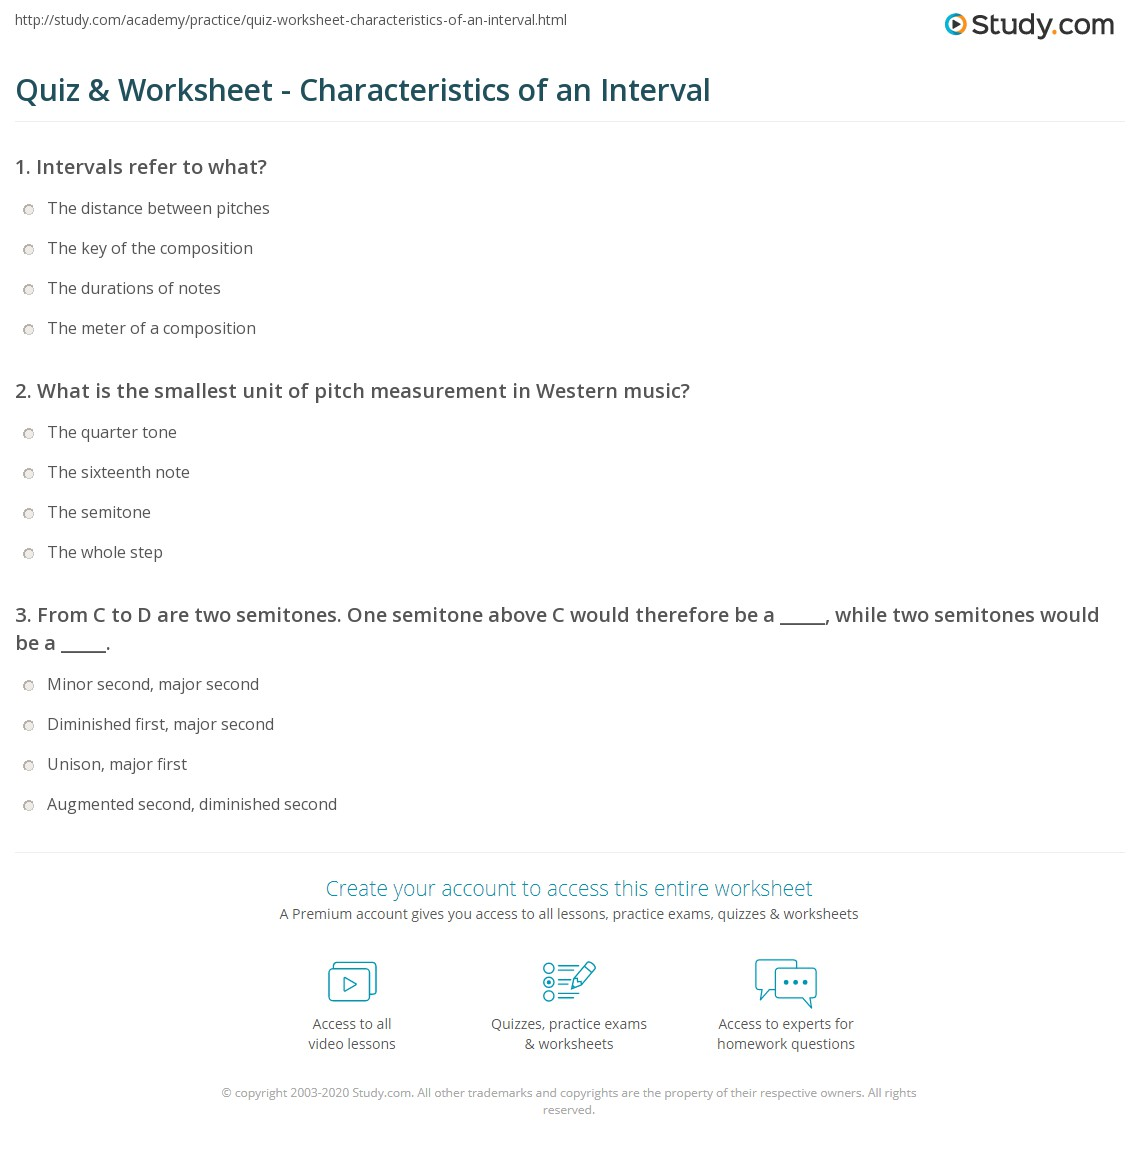 Characteristic intervals. What are characteristic intervals